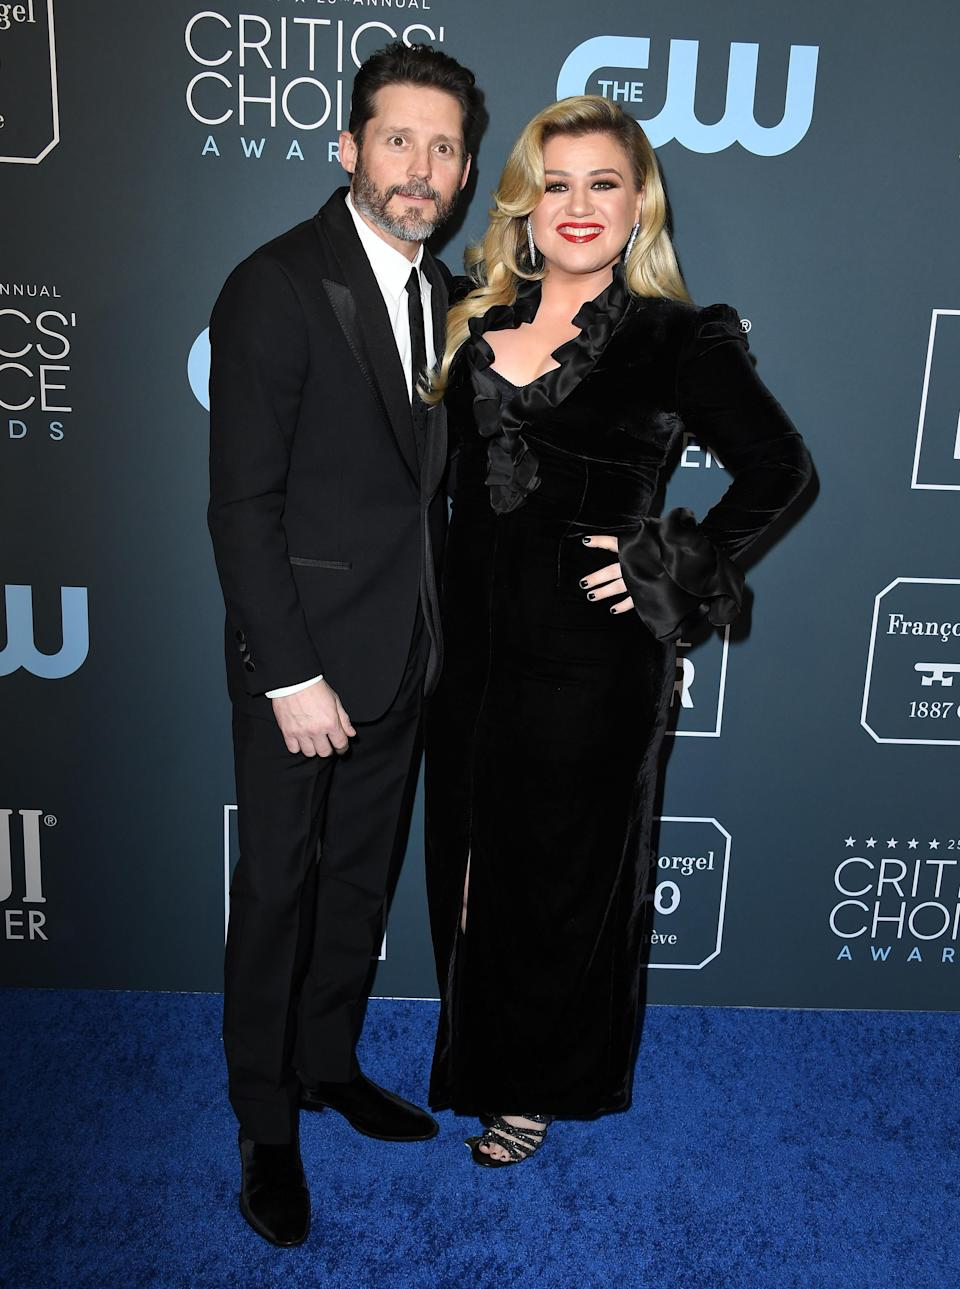 I think Kelly Clarkson deserves every good thing in the world. So when she announced her split from husband Brandon Blackstock after 7 years of marriage, I was shocked. As it turns out, so was Kelly. The daytime talk show host opened up about the split on her show, saying,